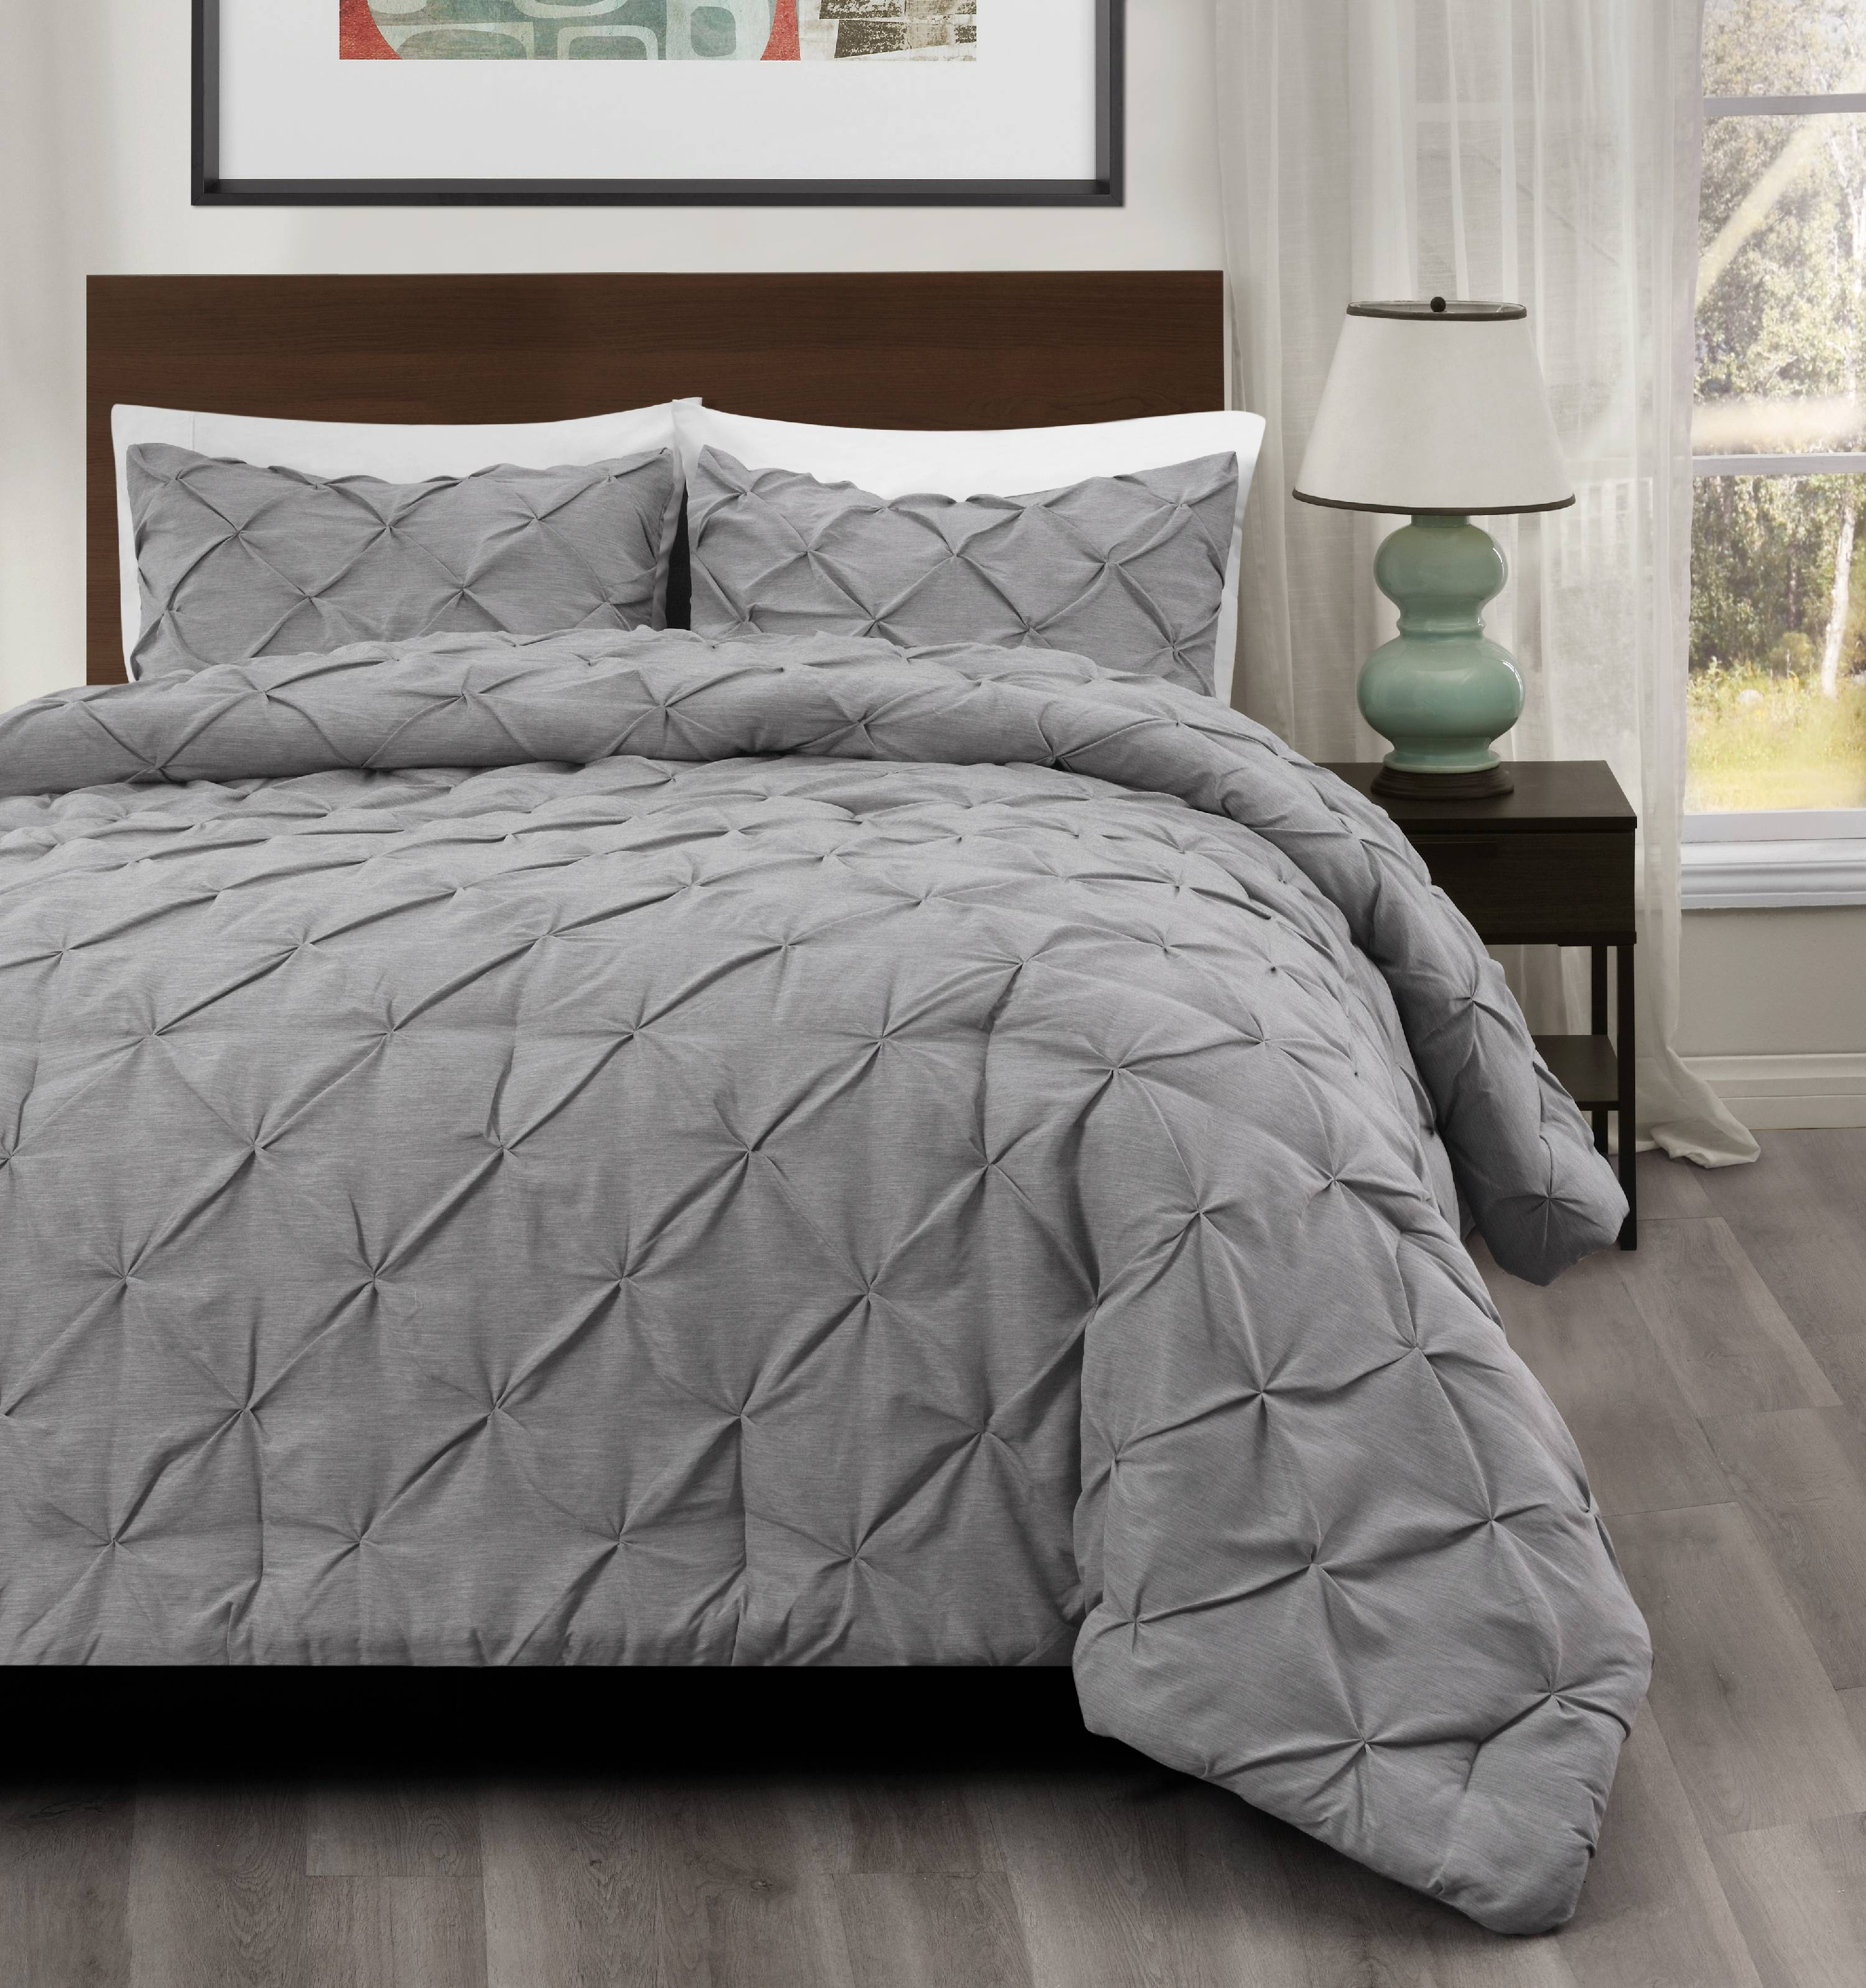 3pc Pinch Pleat Comforter set LIGHT GREY Color Bed Set | Master Collection BY Cozy Beddings